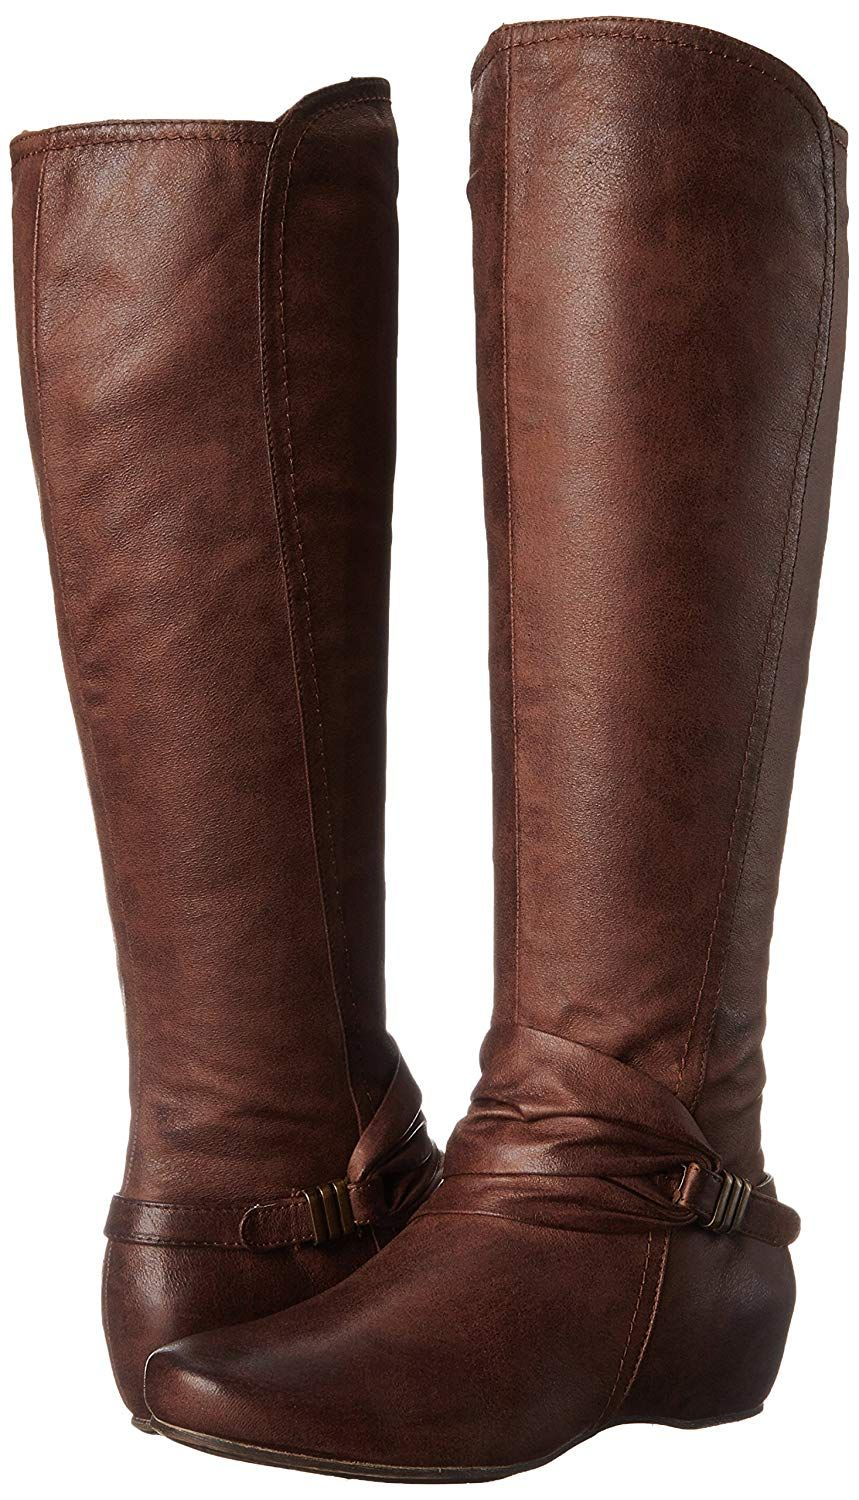 a995c4d1a9c BareTraps Women s Sapphire Slouch Boot -- Click image to review more  details. (This is an affiliate link)